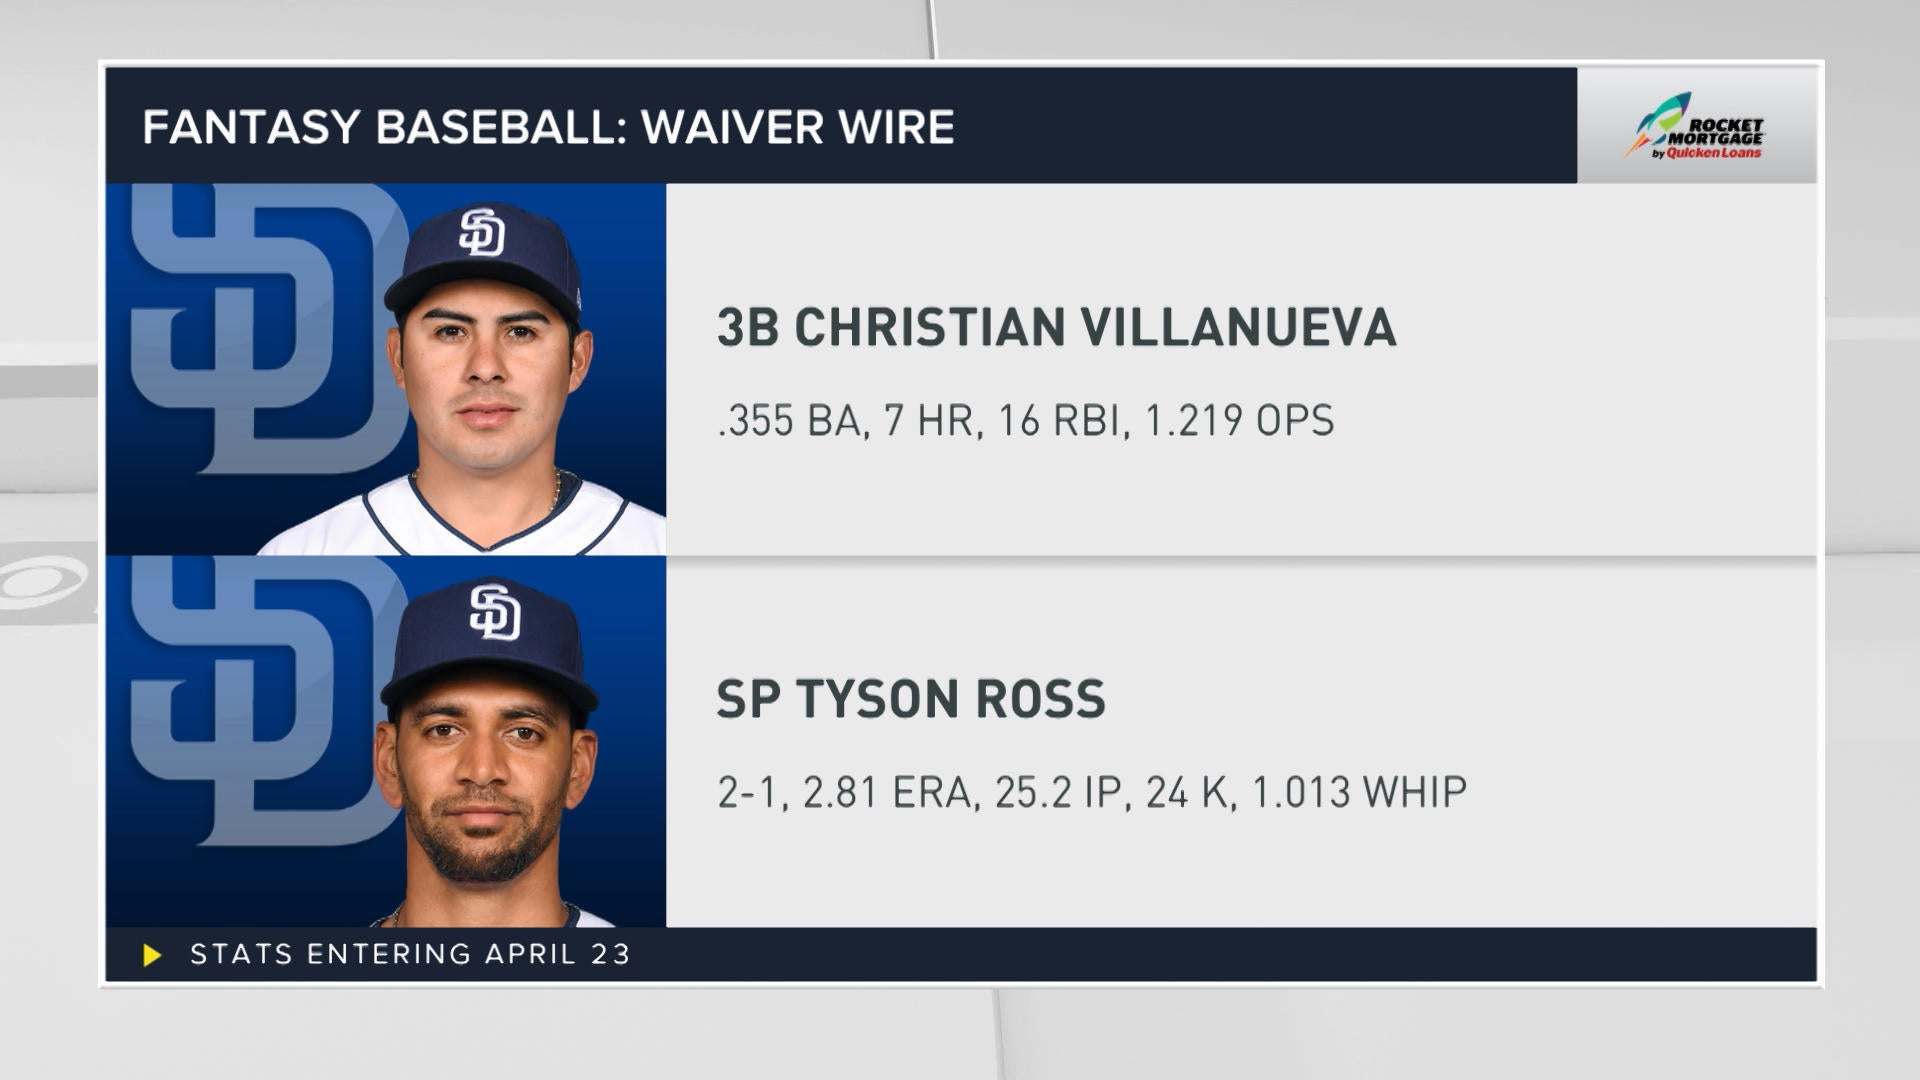 Fantasy Baseball: Wavier wire - CBSSports.com